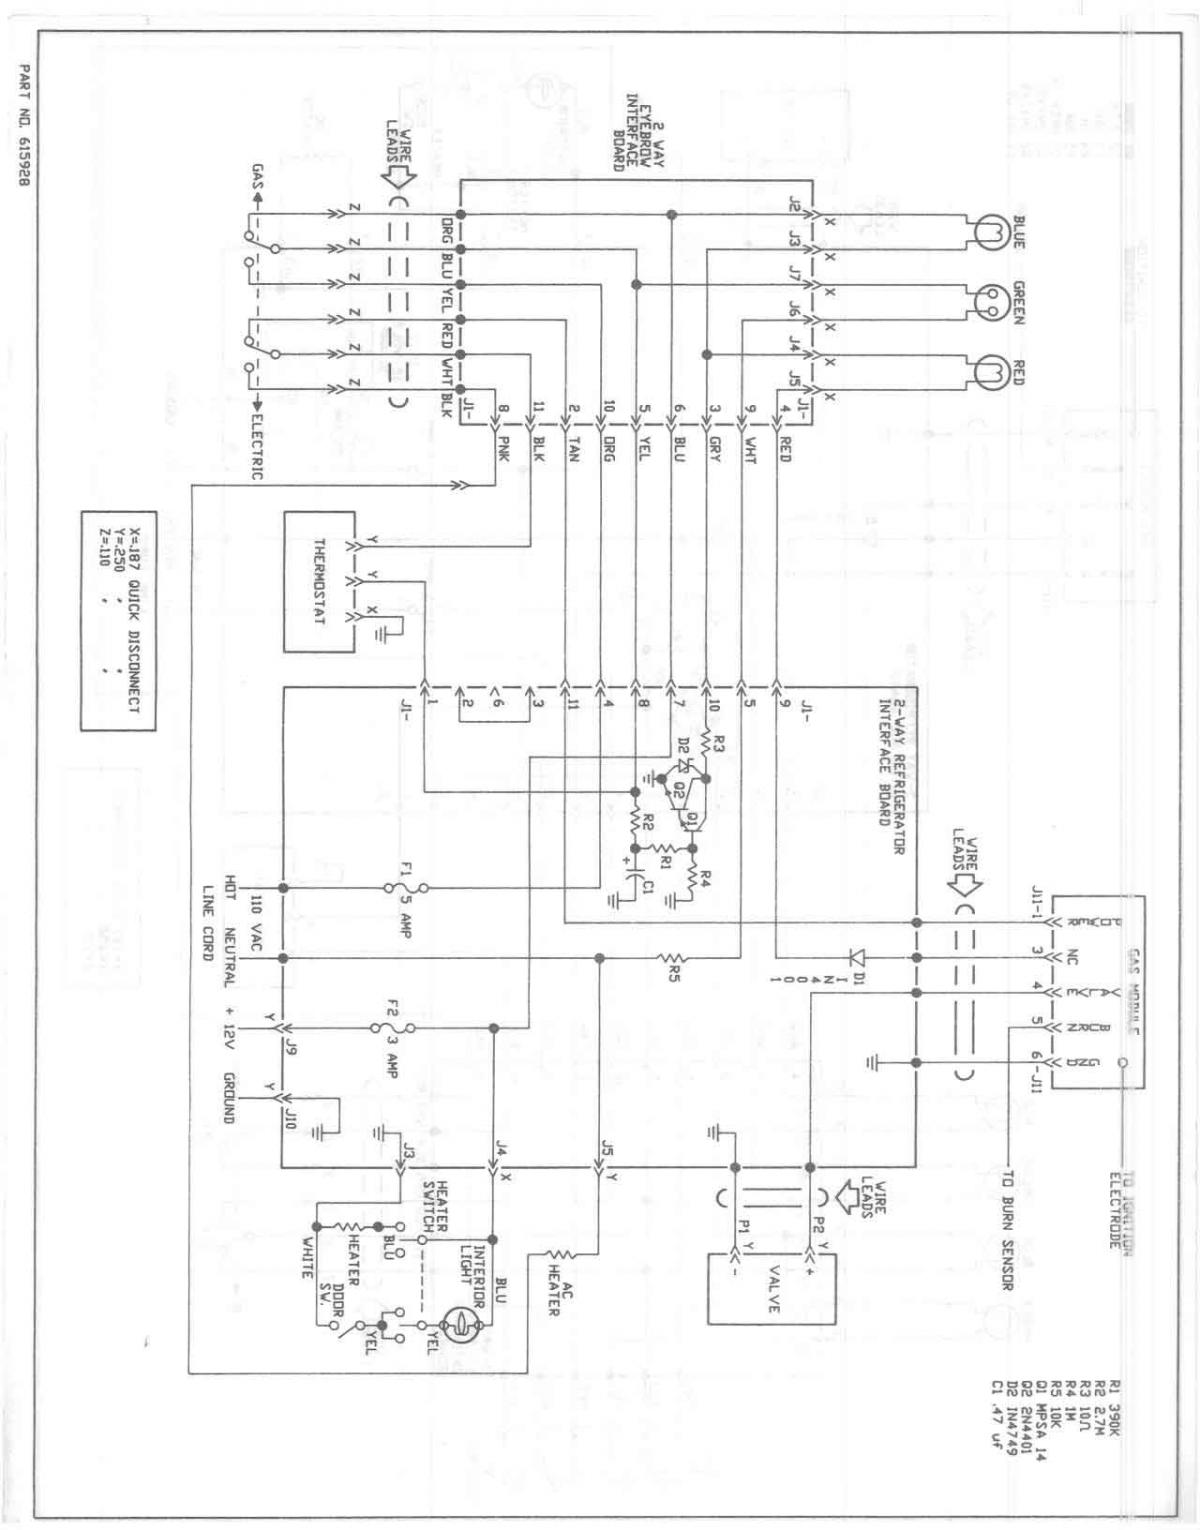 Refrigerator Wiring Diagram Moreover Refrigerator Pressor Start Relay